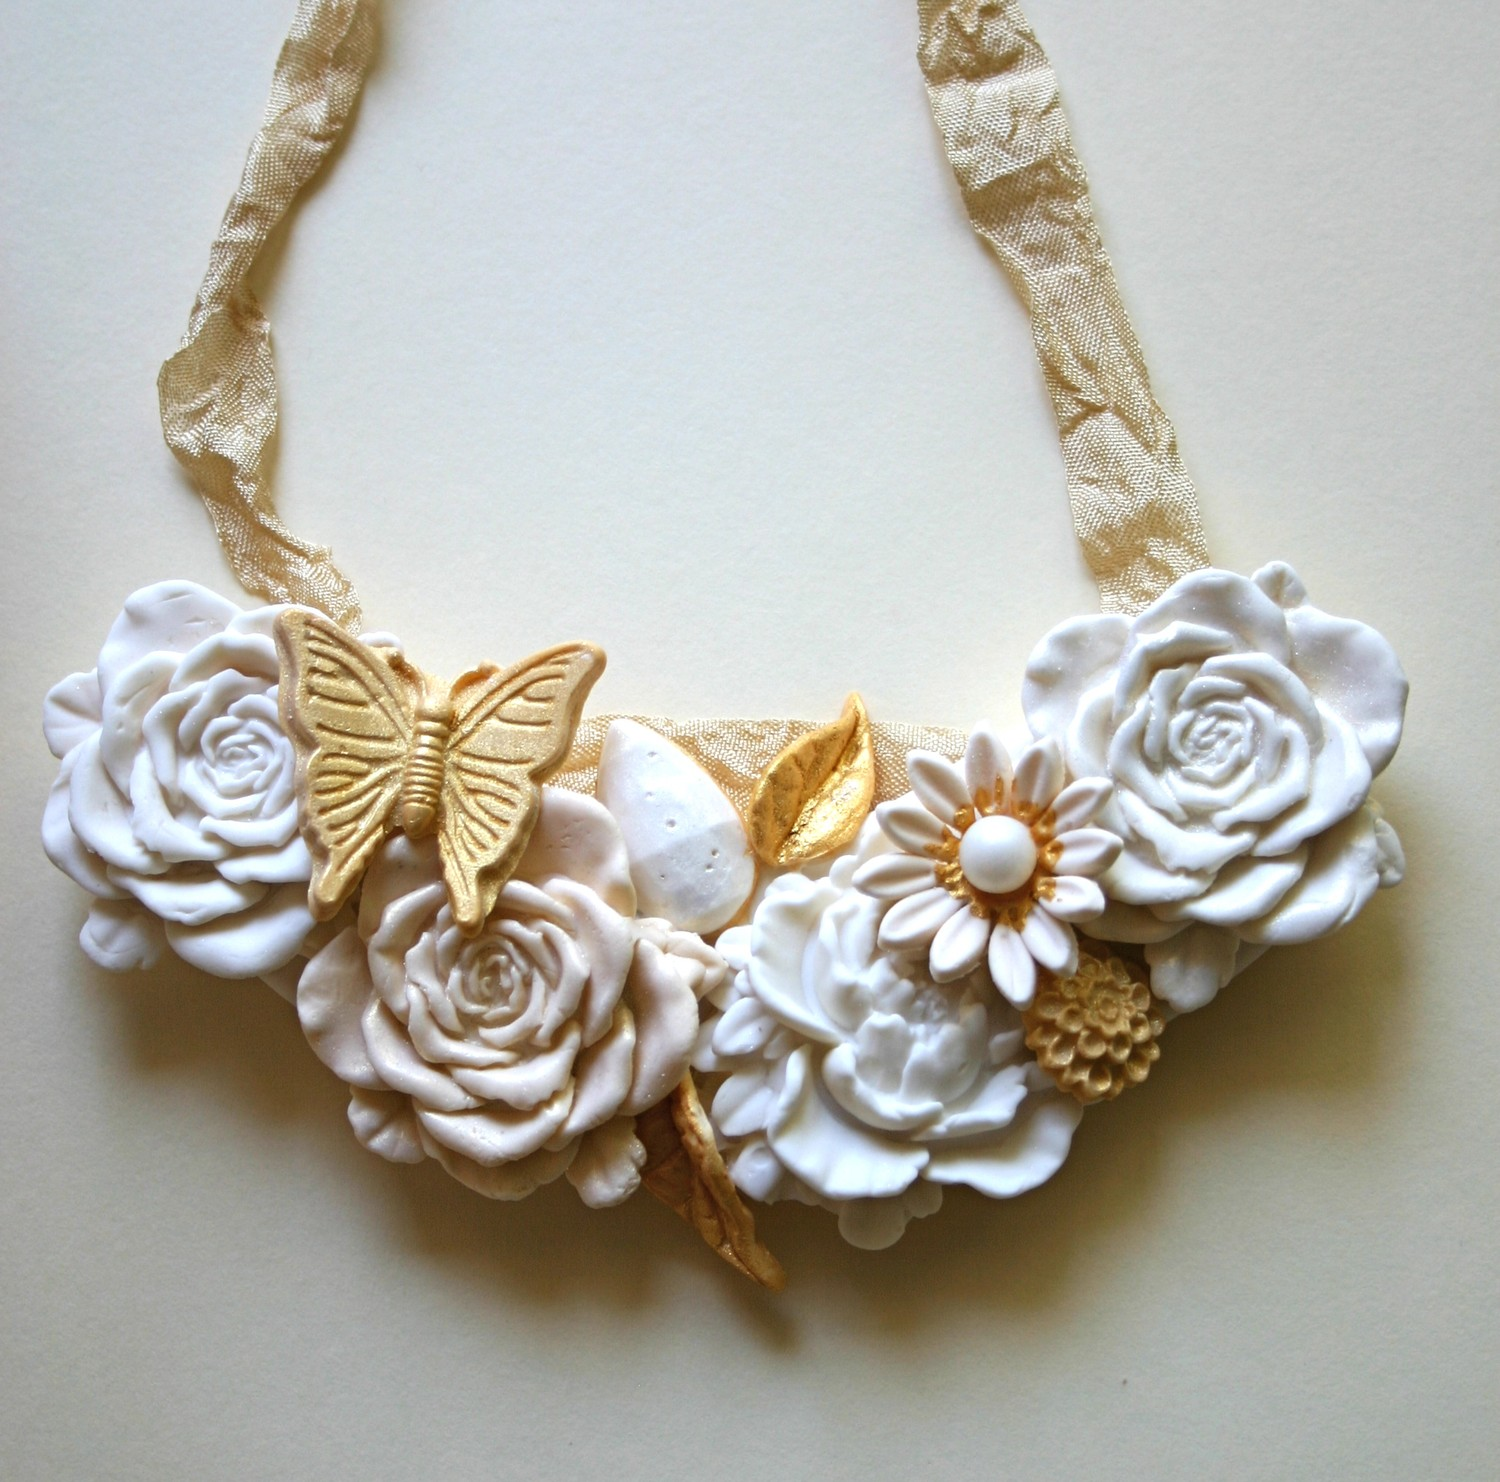 Sweet-wedding-finds-edible-statement-necklace.original